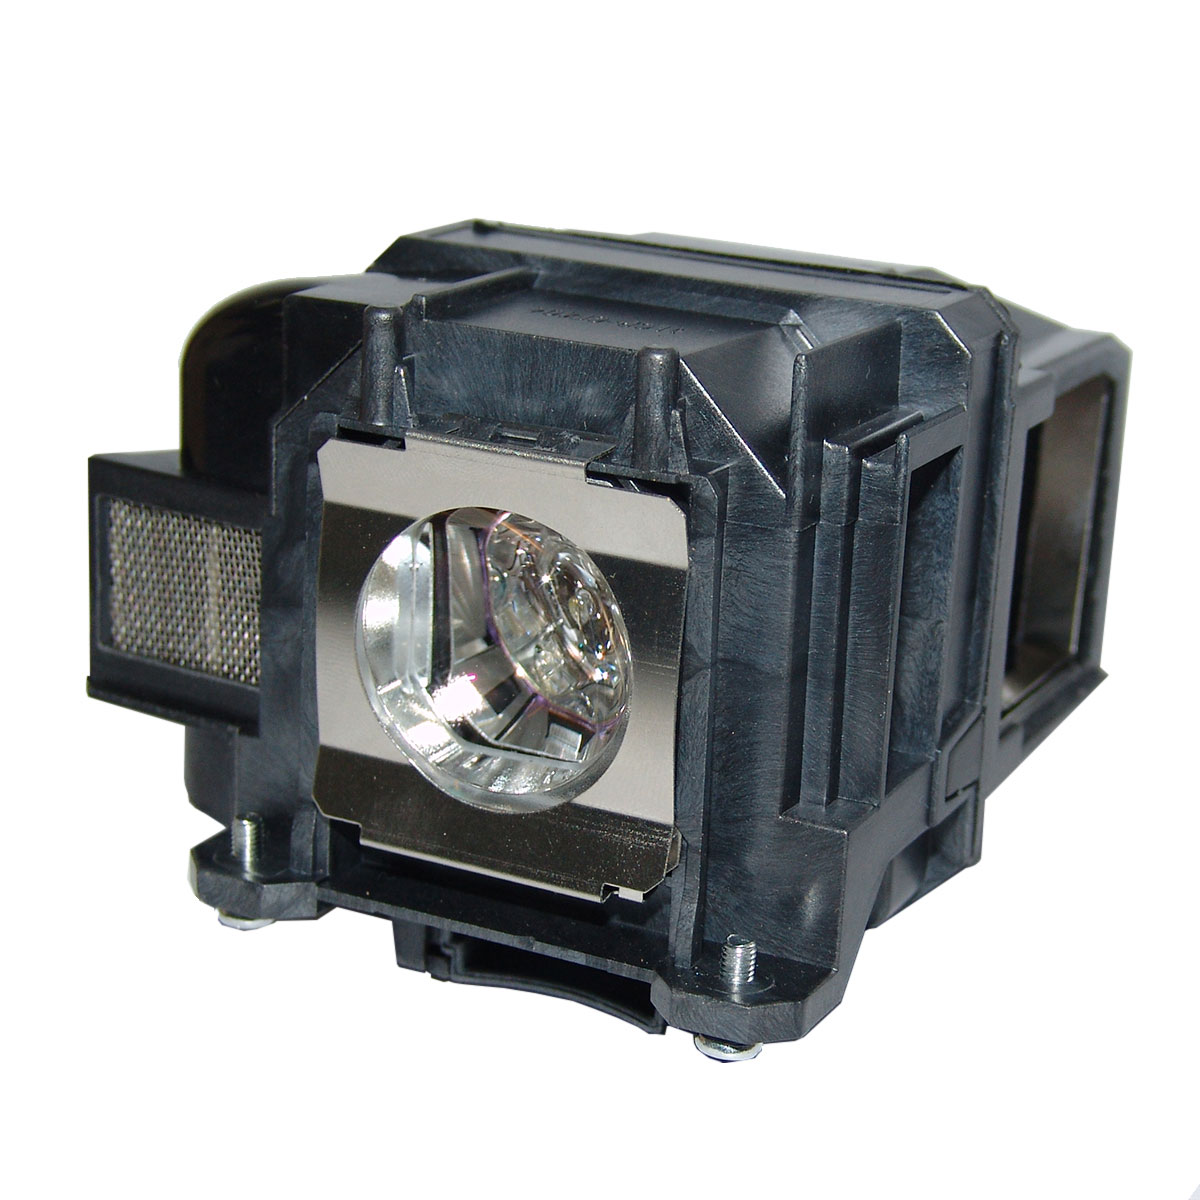 Projectorquest Epson Elplp78 Projector Lamp New Uhe